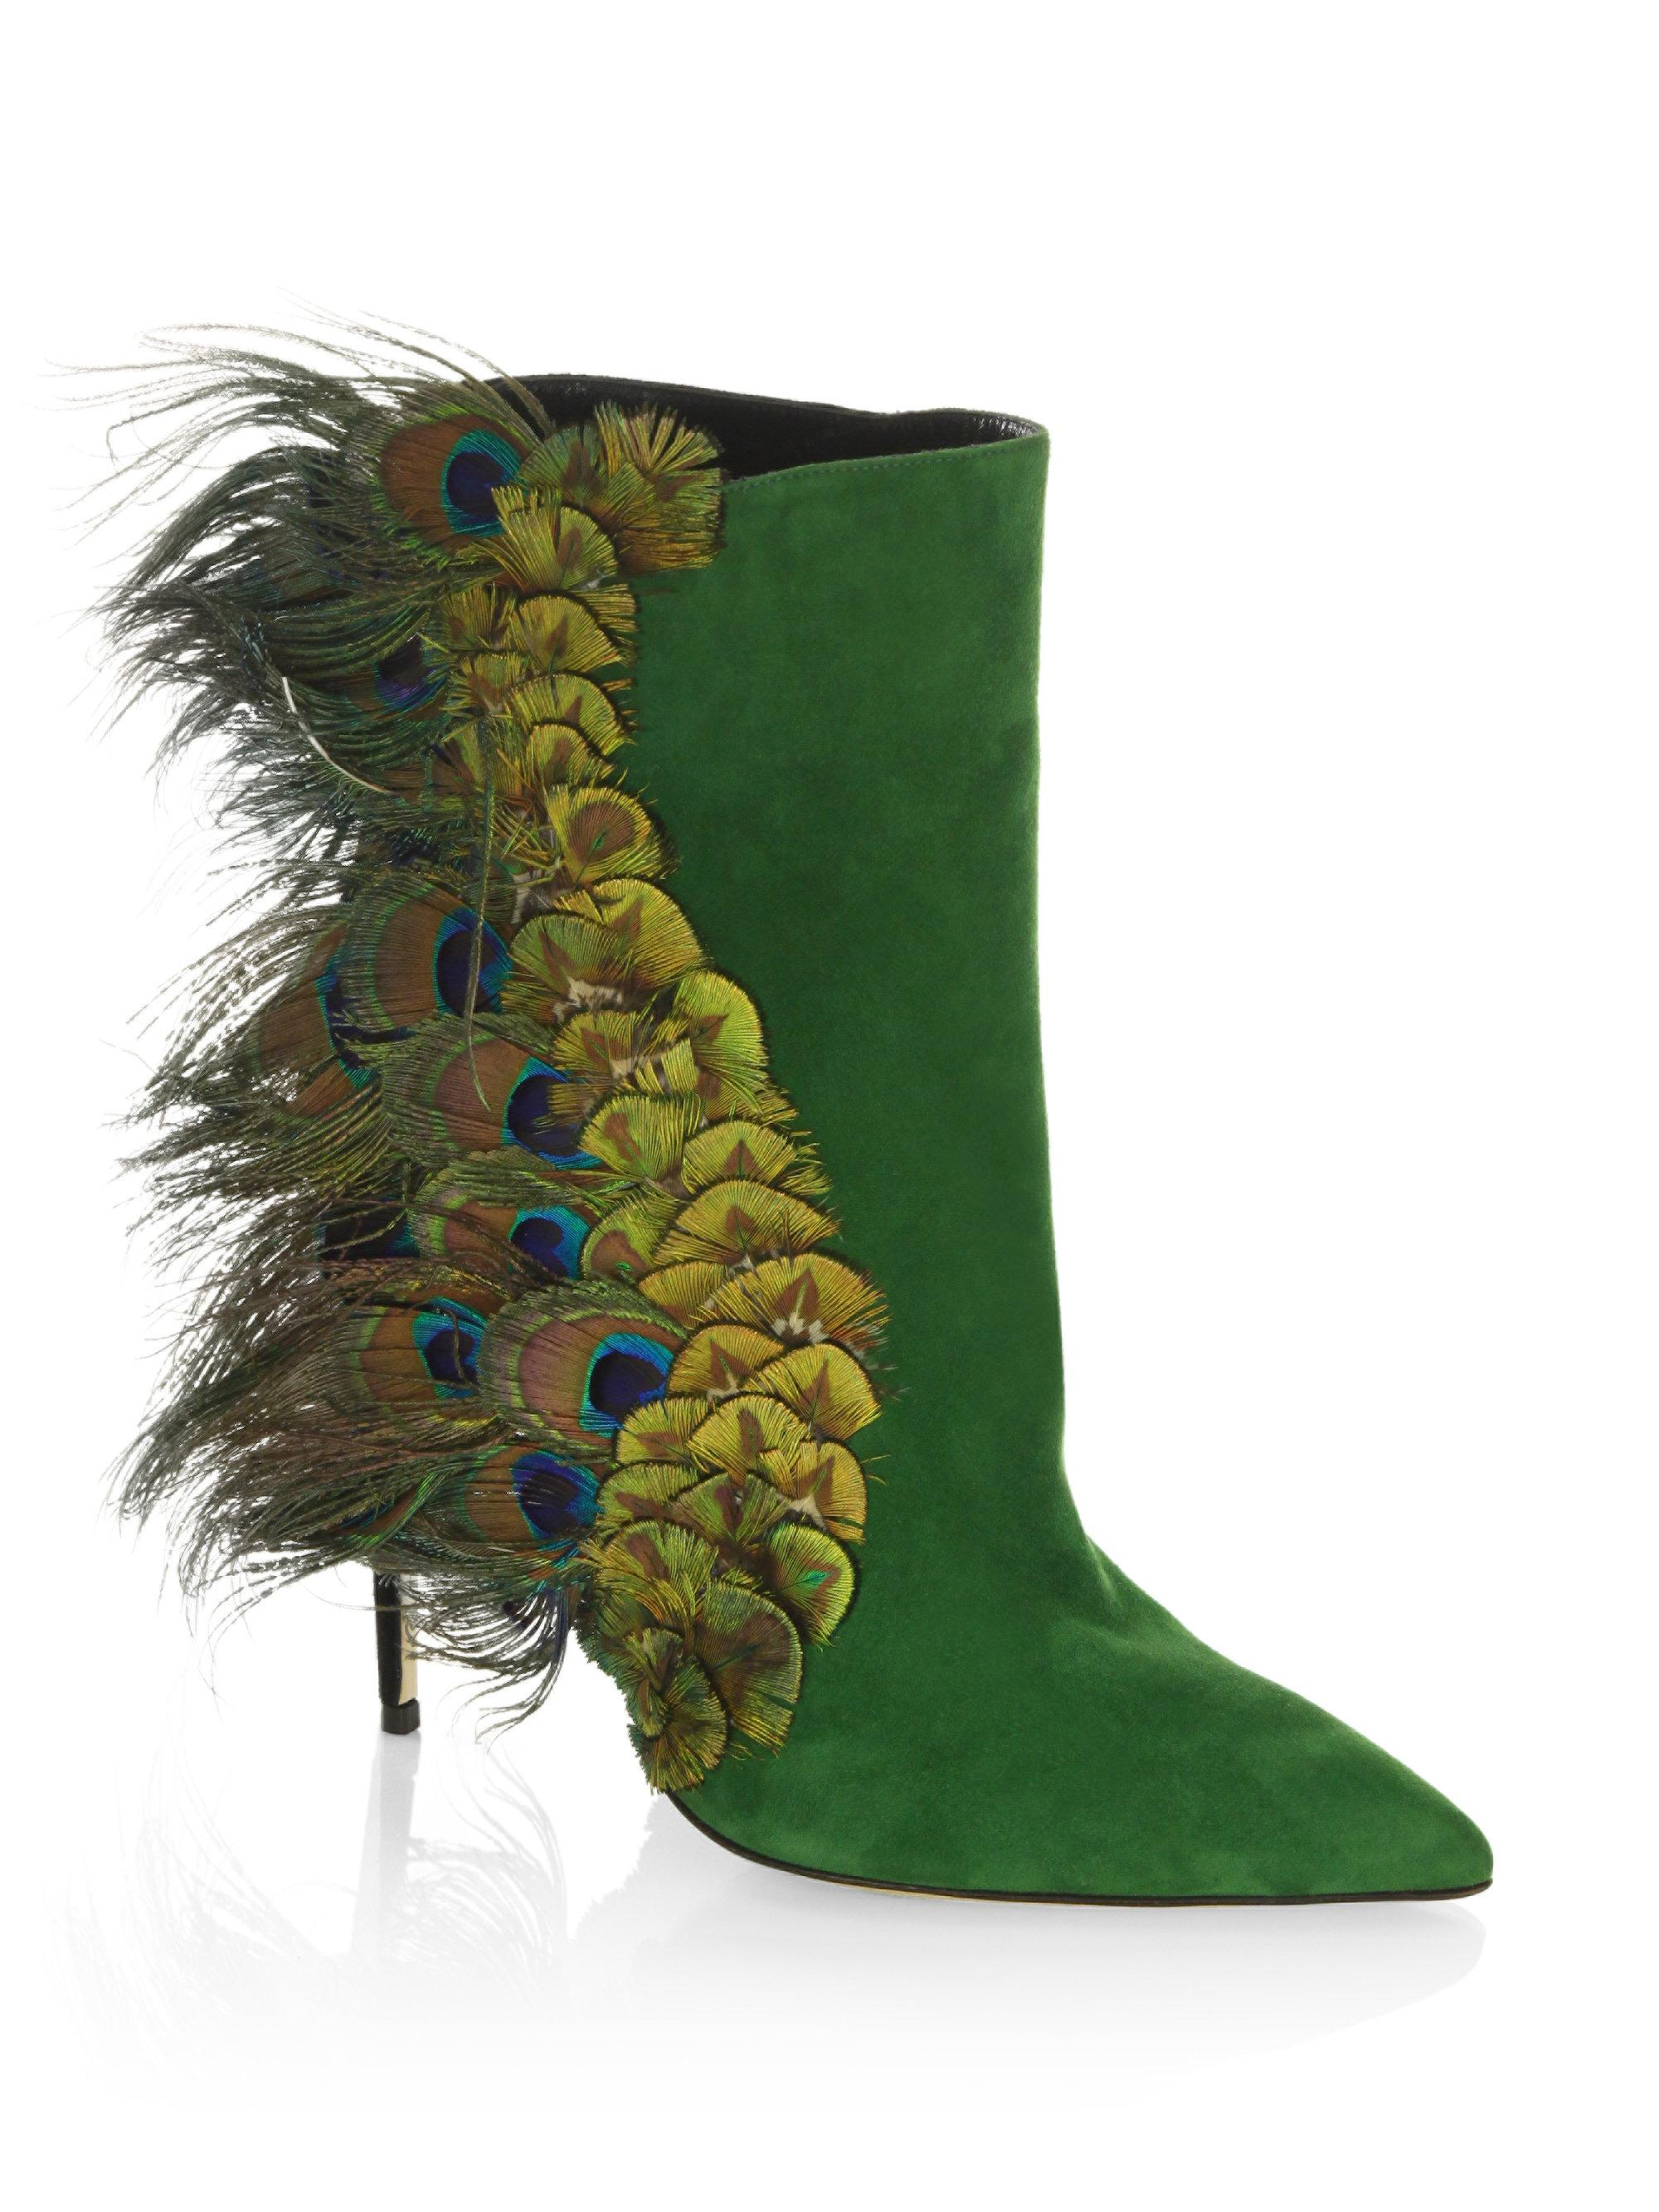 PAUL ANDREWLimited-Edition Pana Peacock Feather & Suede Booties 3UdrFy9rP